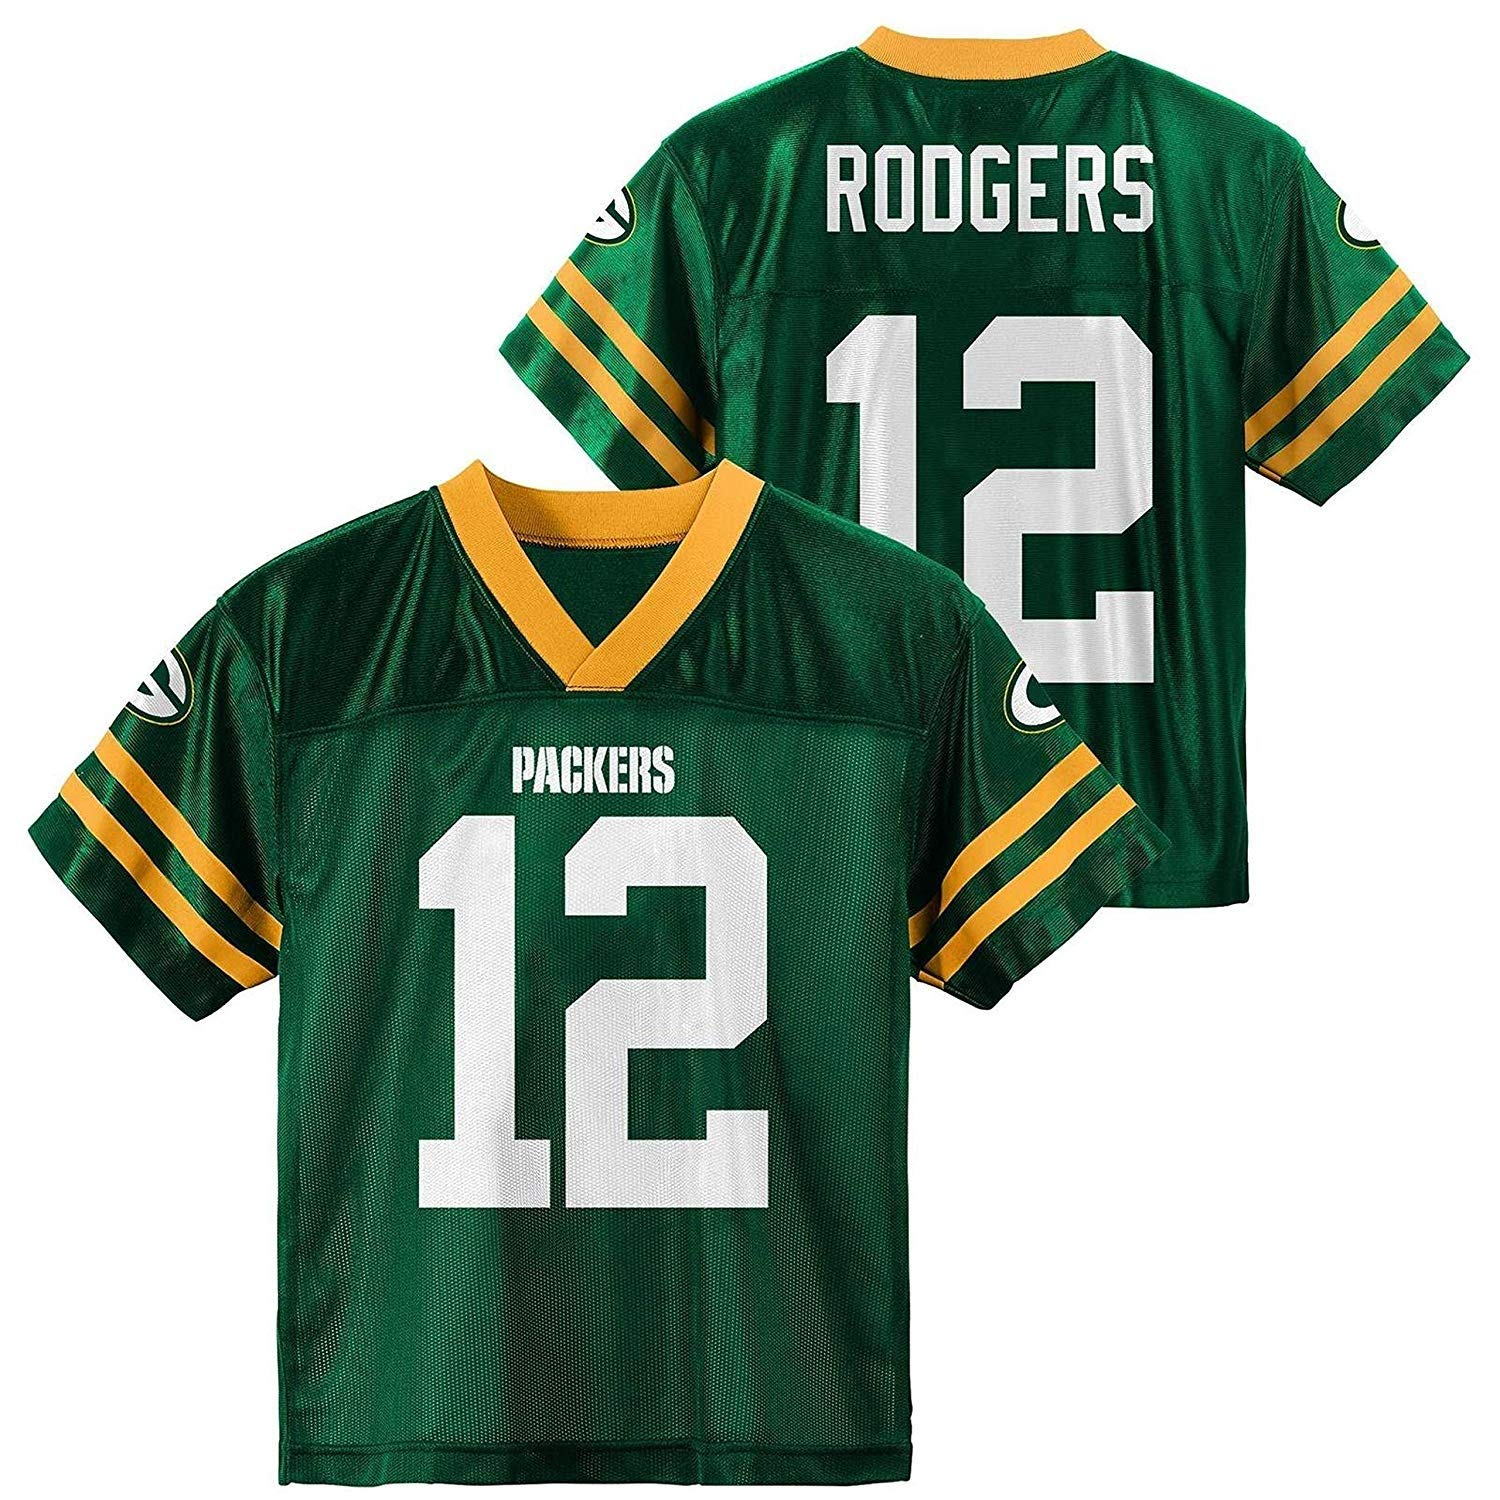 Outerstuff Aaron Rodgers Green Bay Packers #12 Youth Home Player Jersey